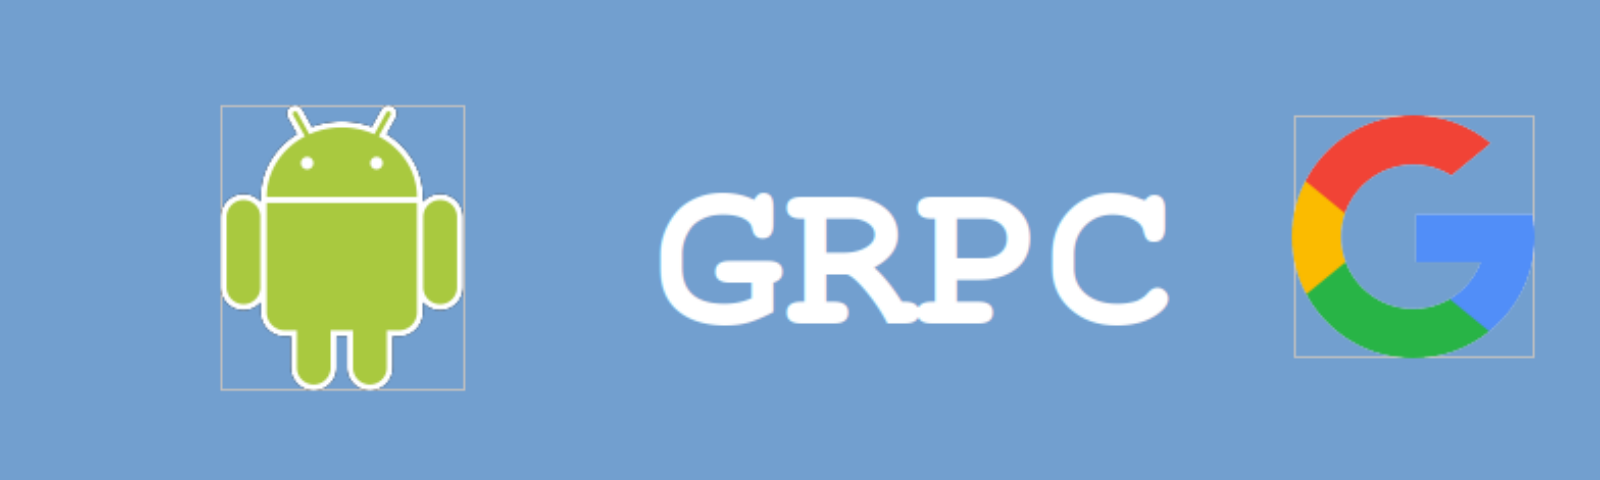 gRPC client side implementation for Android